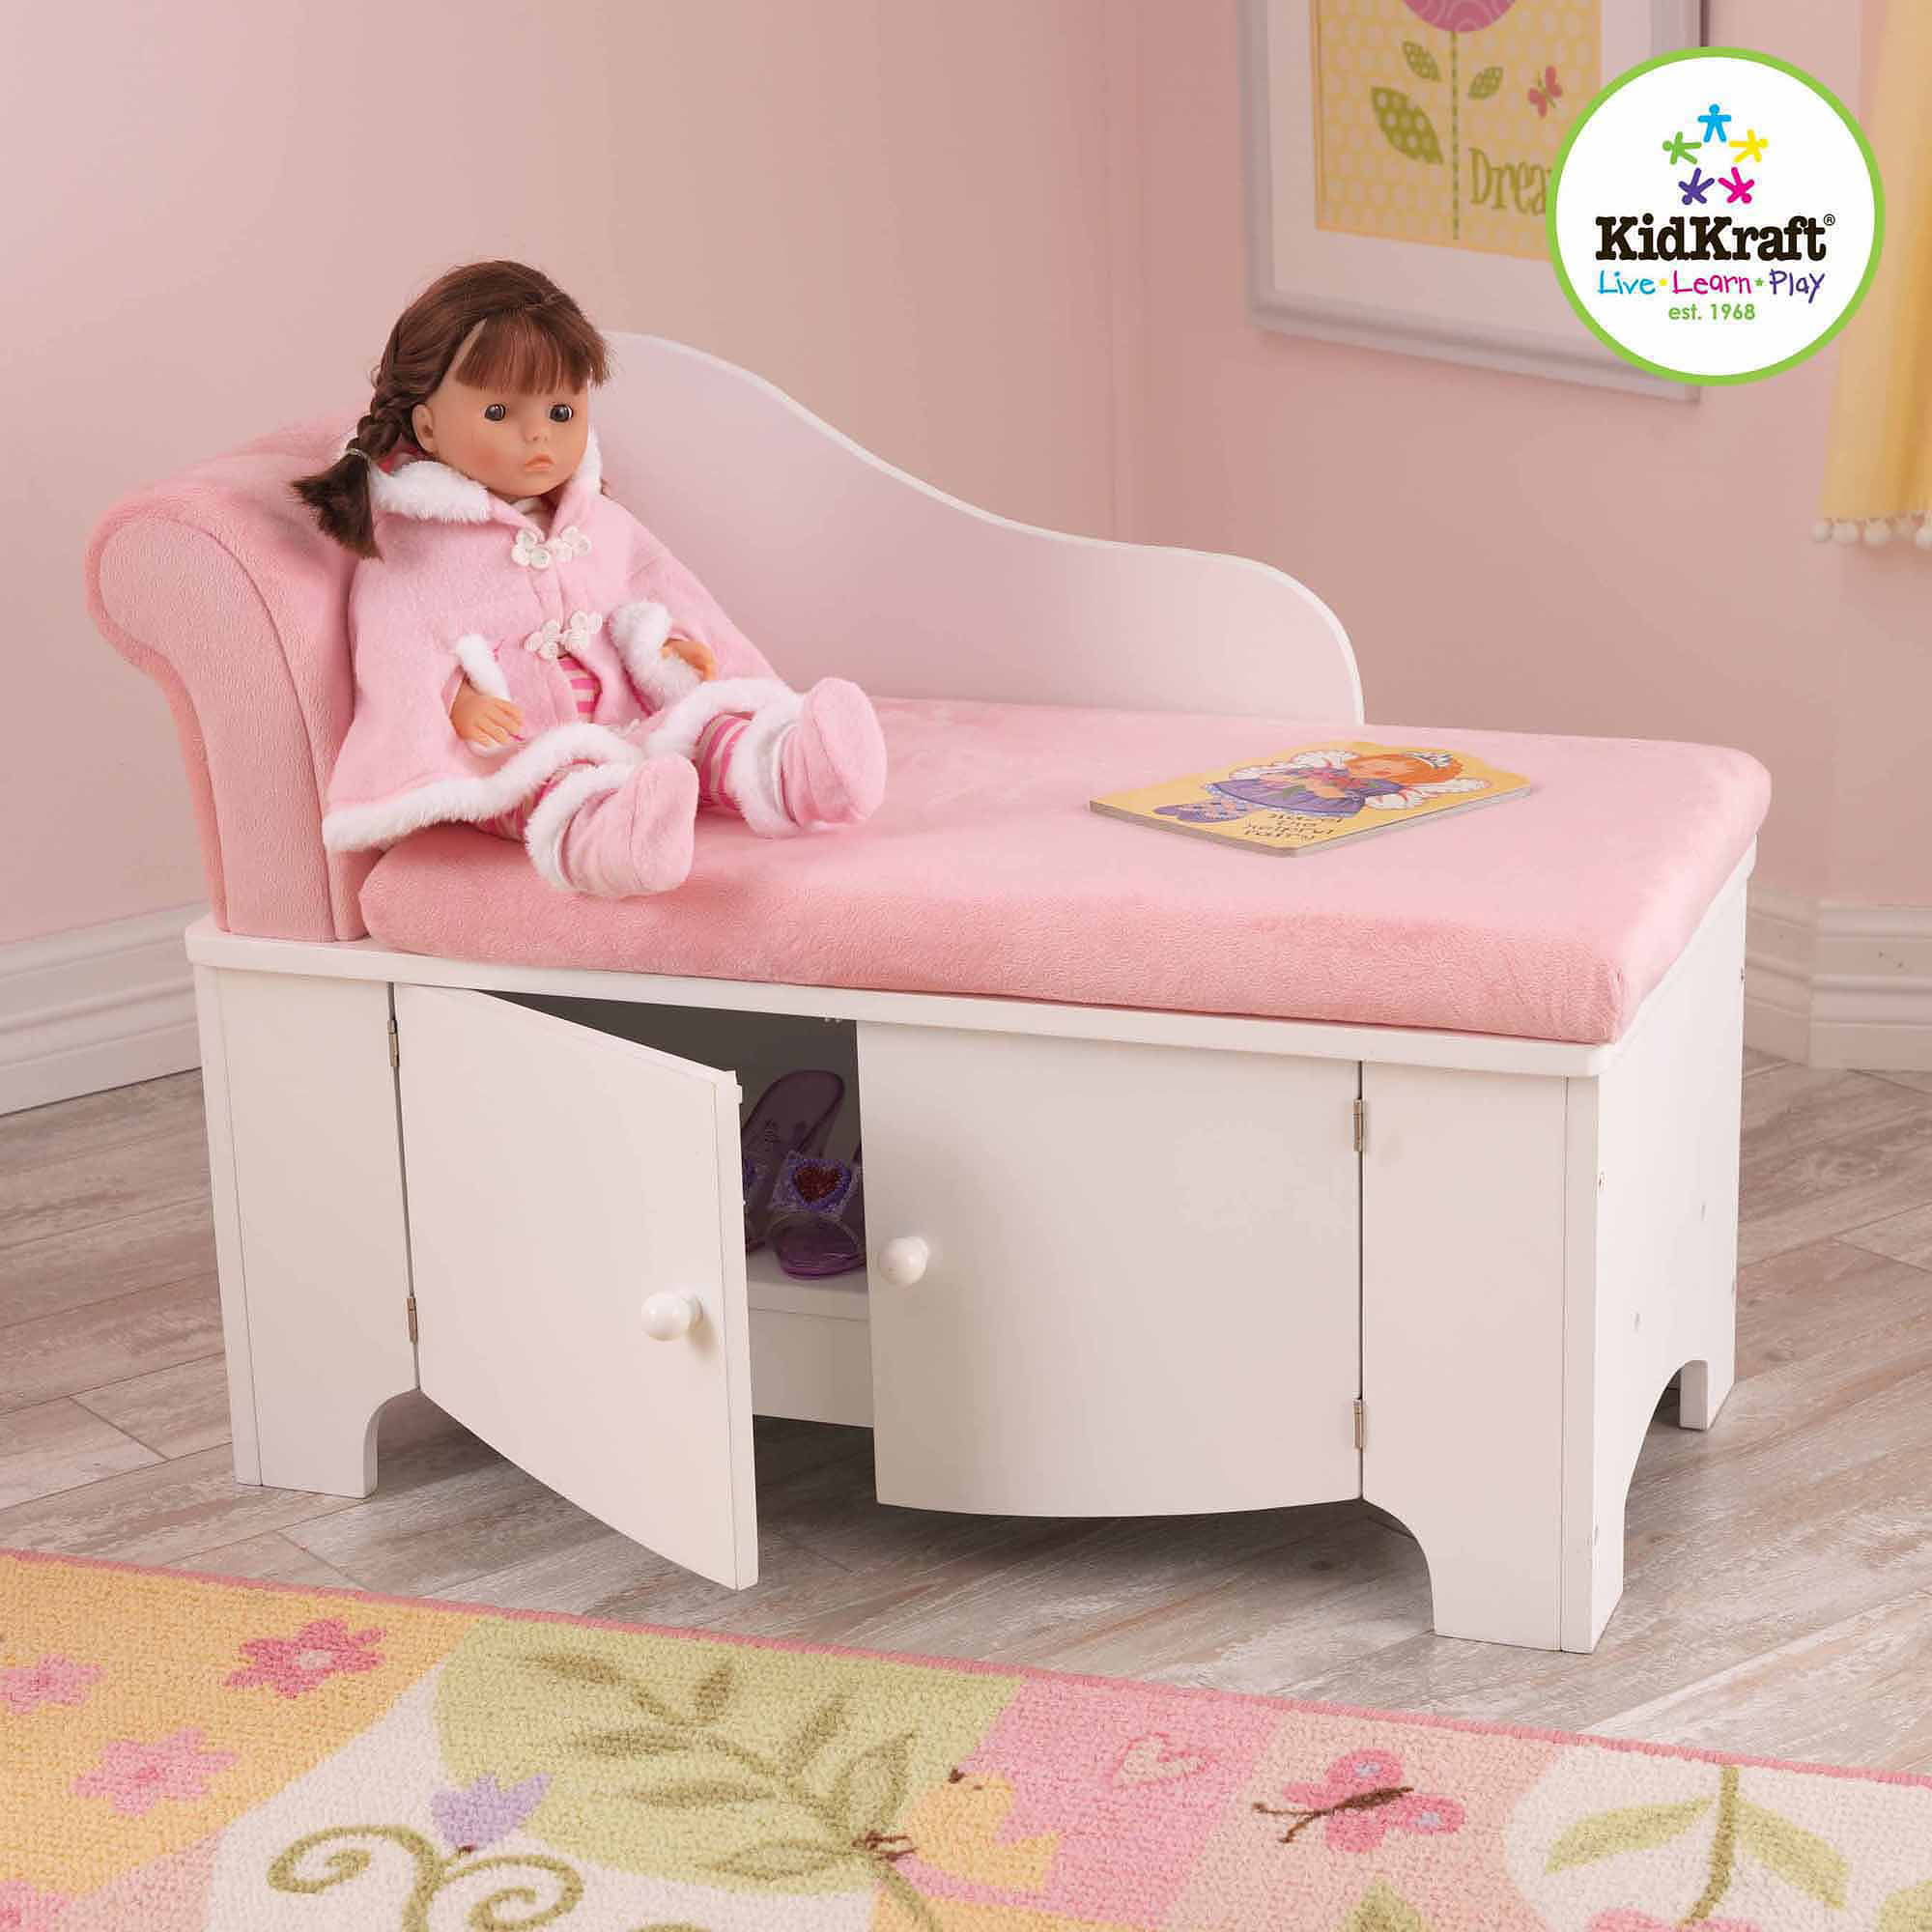 KidKraft Princess Chaise Lounge with Storage by KidKraft